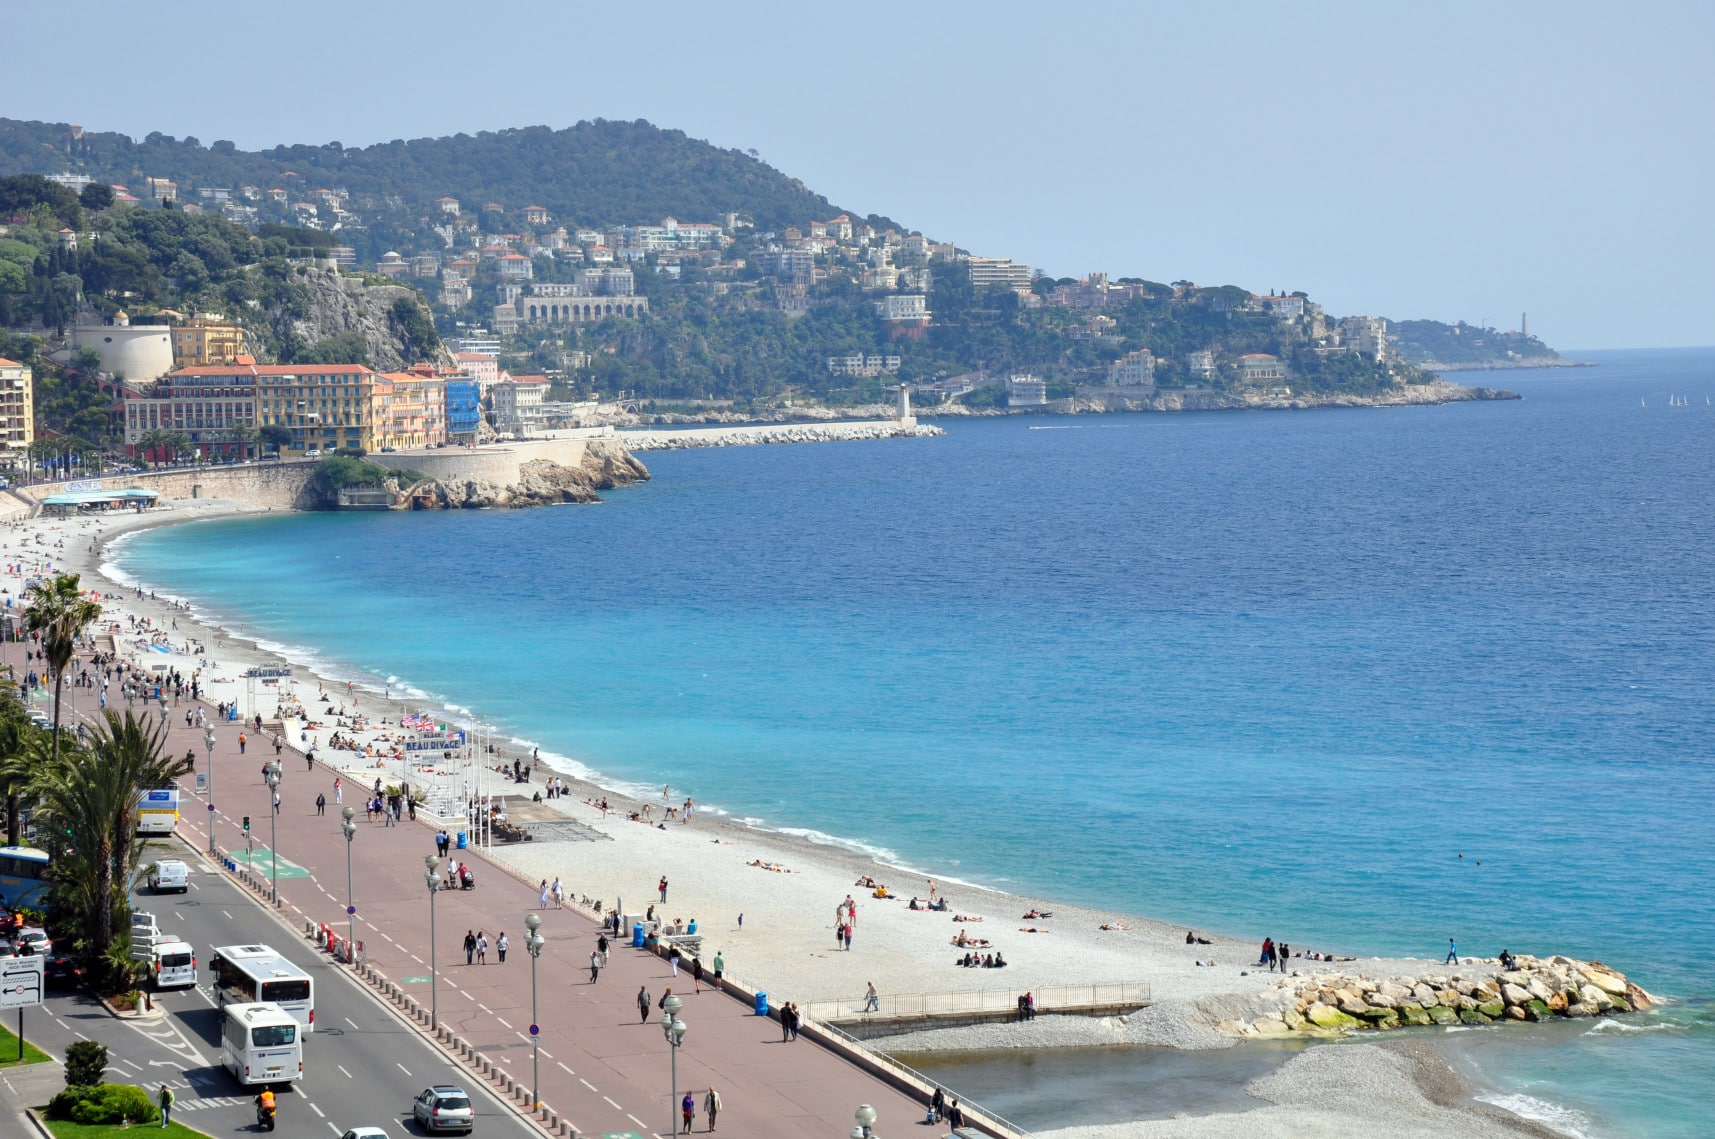 Antibes To Toulon 5 Magnificent Places To Discover The French Riviera By Boat Set Sail